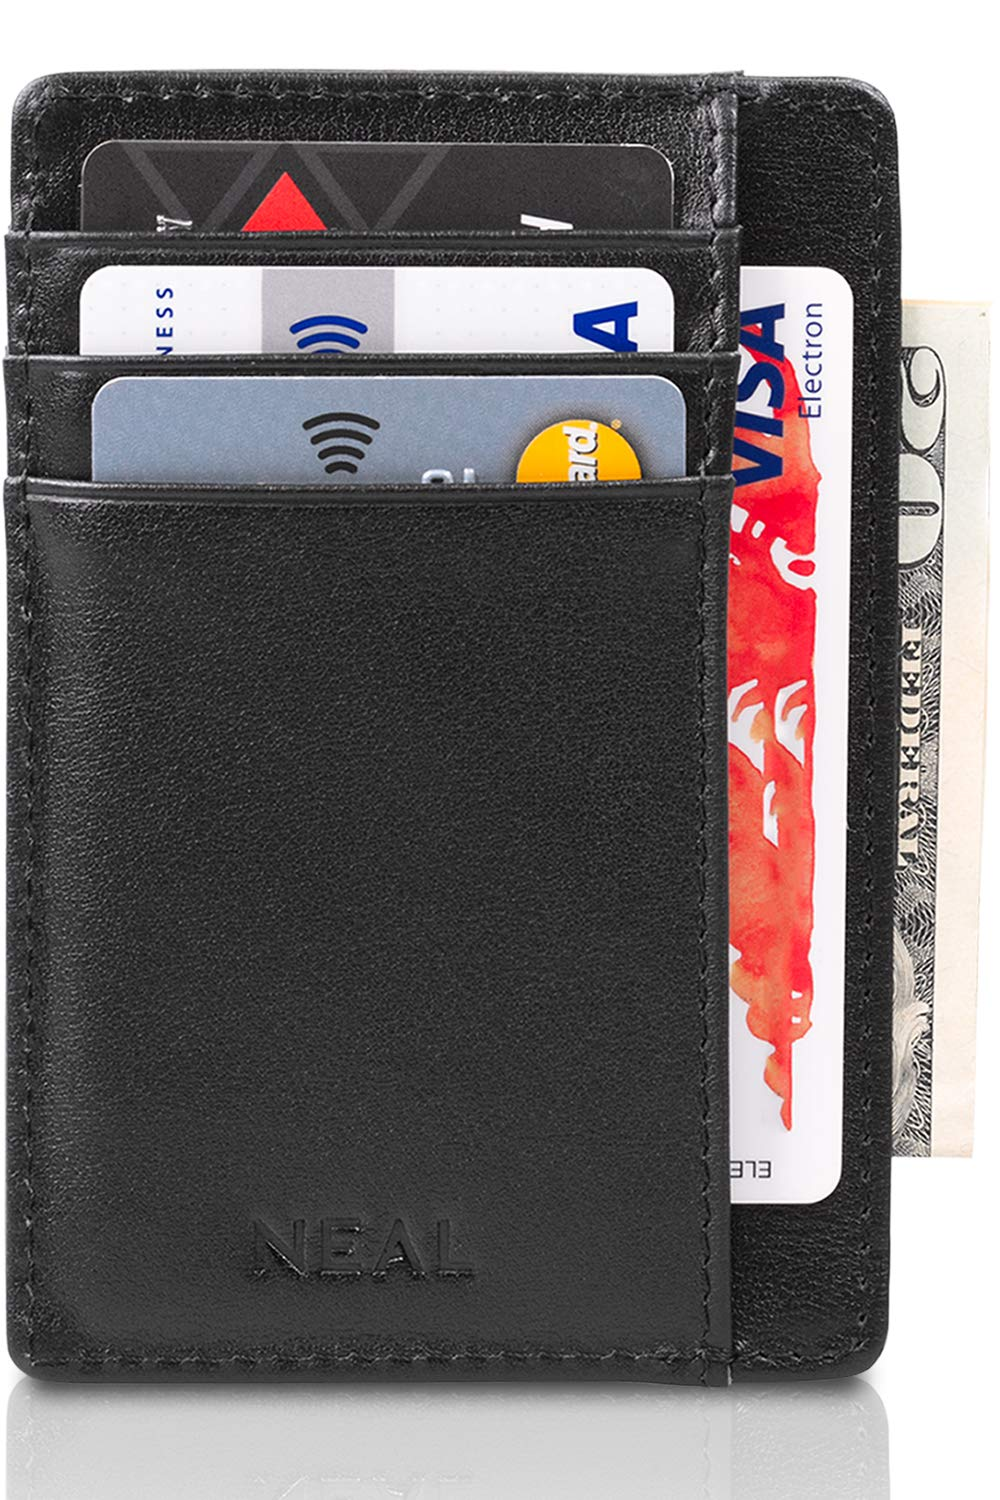 NEAL Front Pocket Slim Wallet RFID Blocking, Top Grain Leather Set with Gift Box